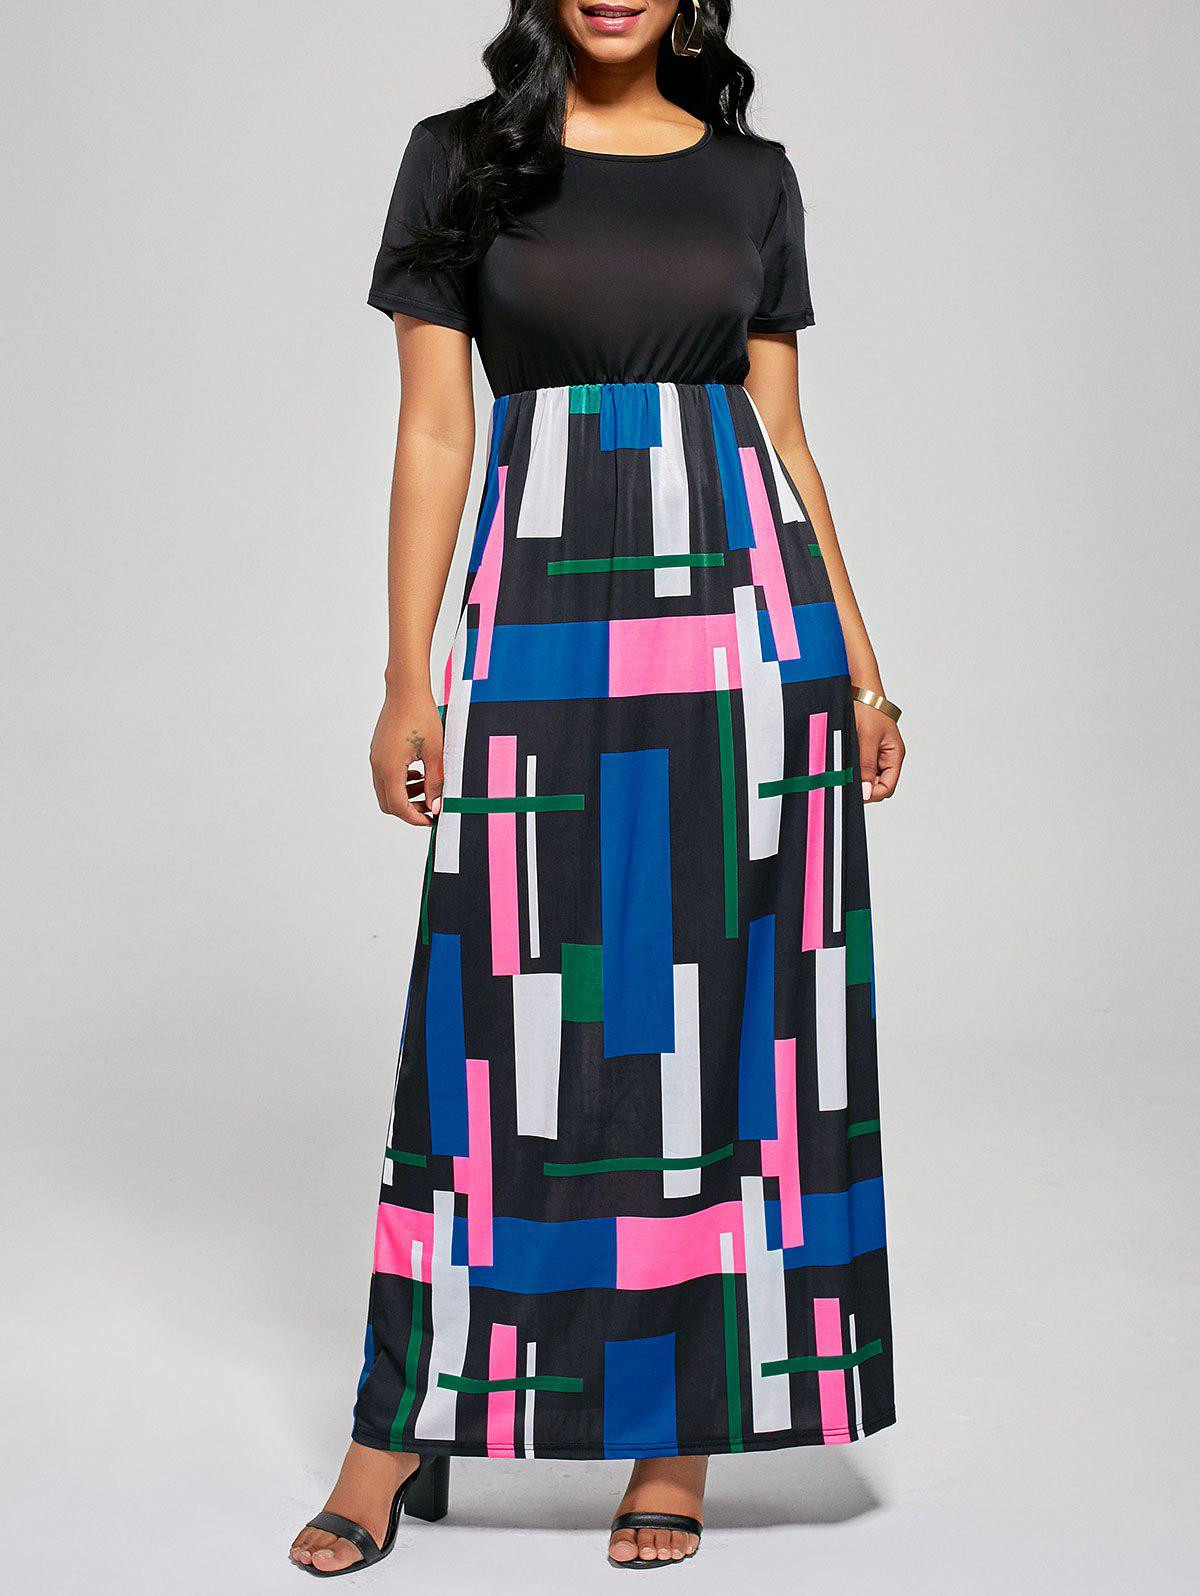 Geometric Print A Line Floor Length Dress - BLACK / ROSE S